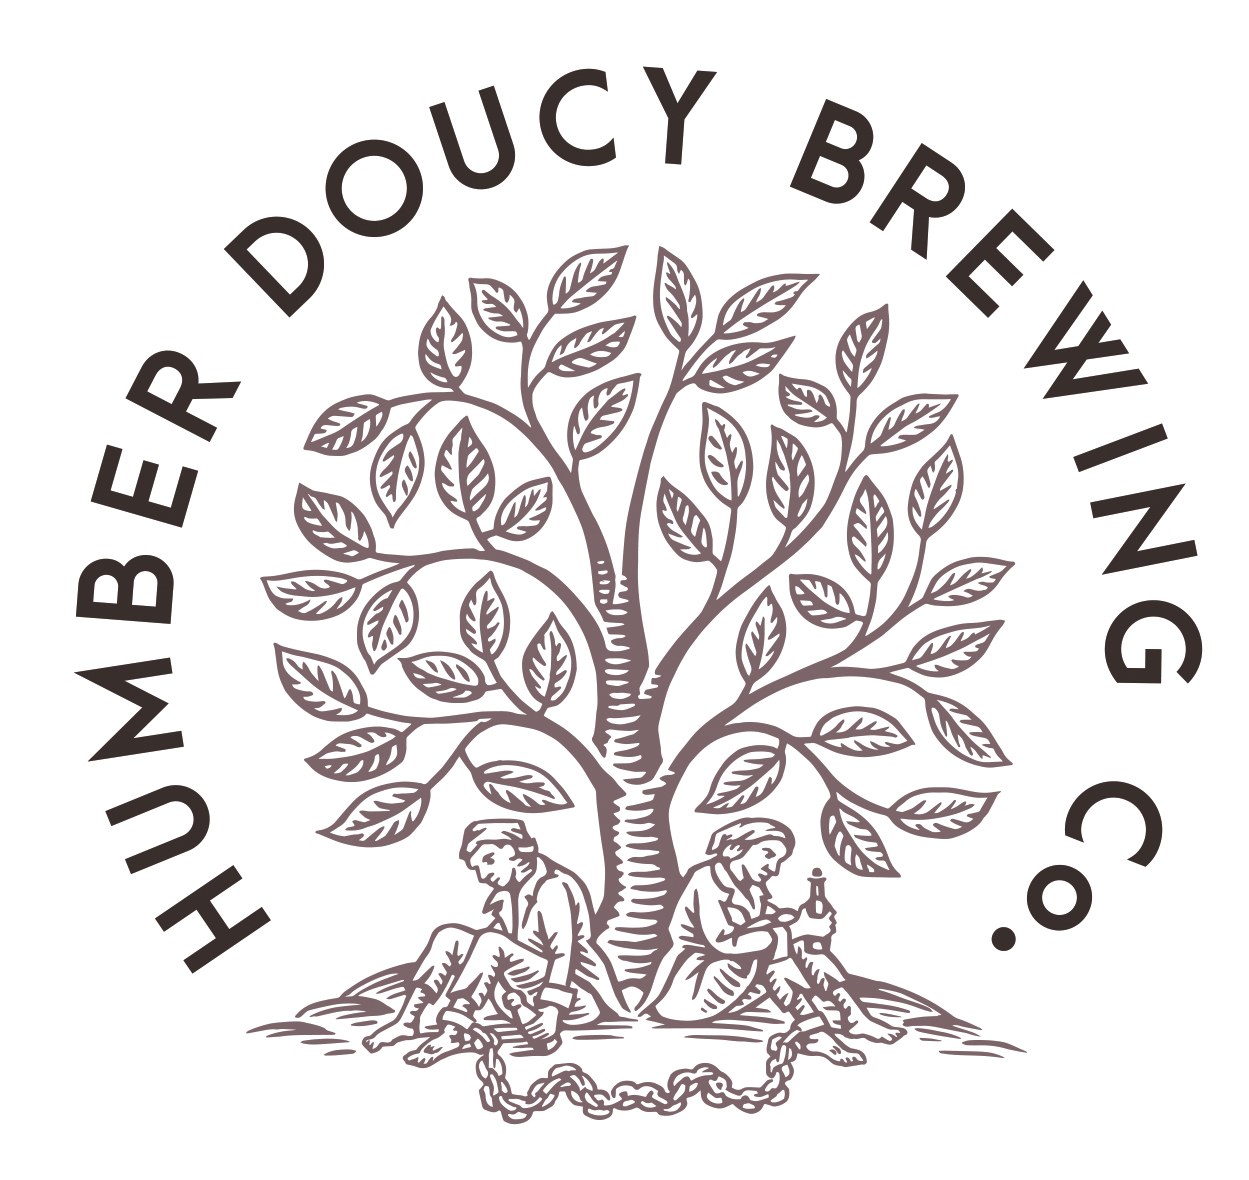 Humber Doucy Brew Co - Trade Mailing List - www.humberdoucybrew.co